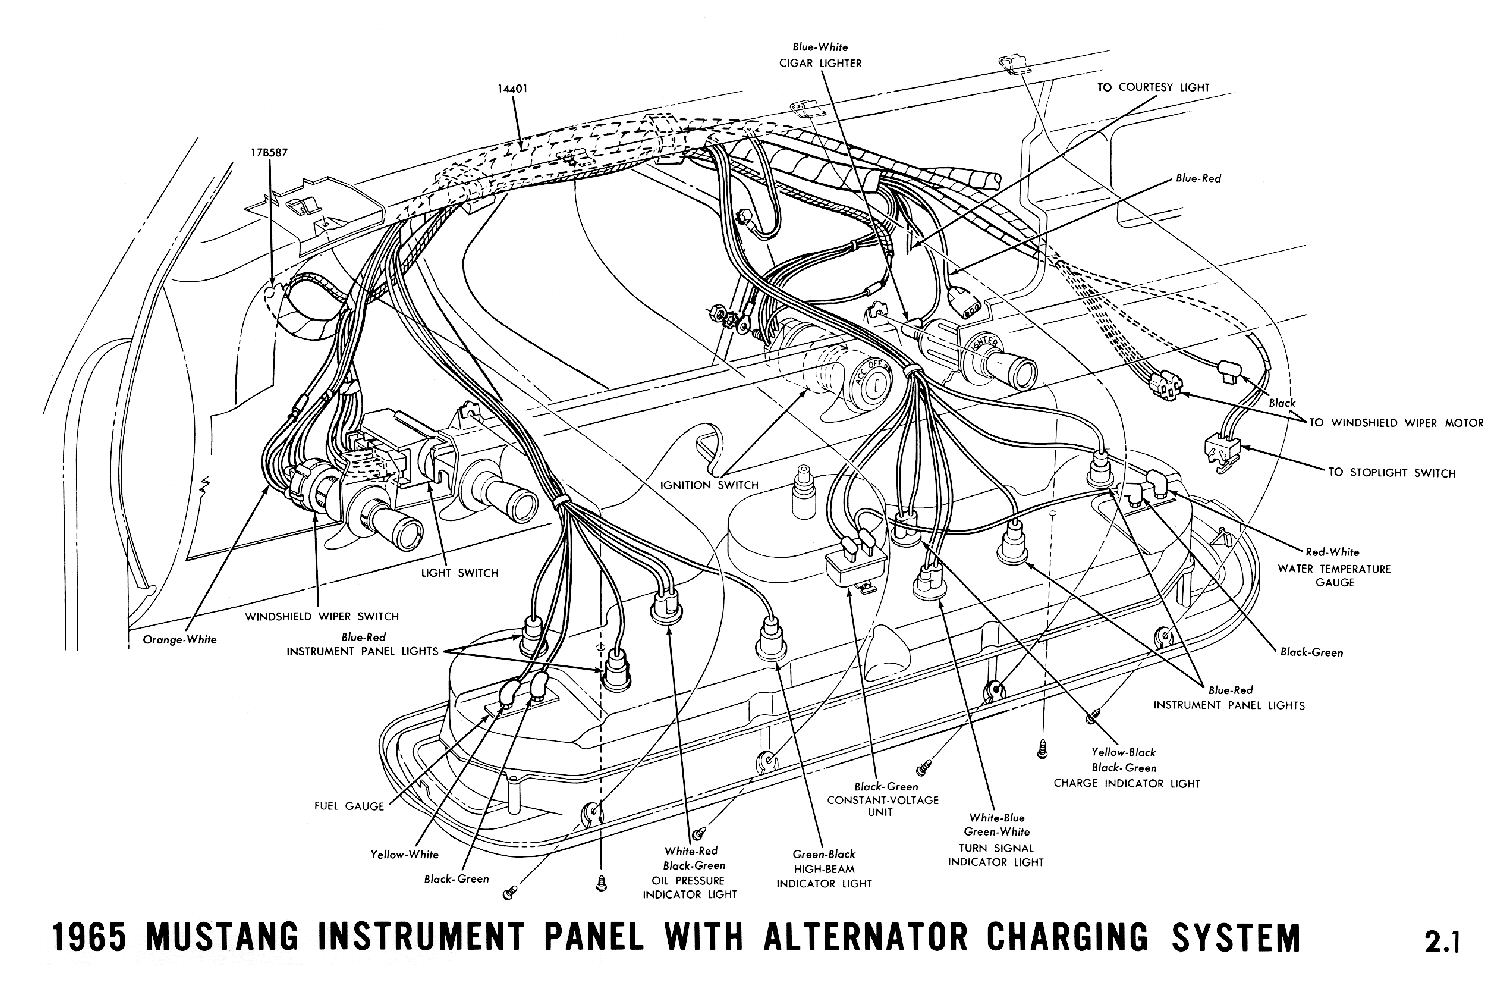 1965a 1965 mustang wiring diagrams average joe restoration highway 22 wiring diagram at mifinder.co